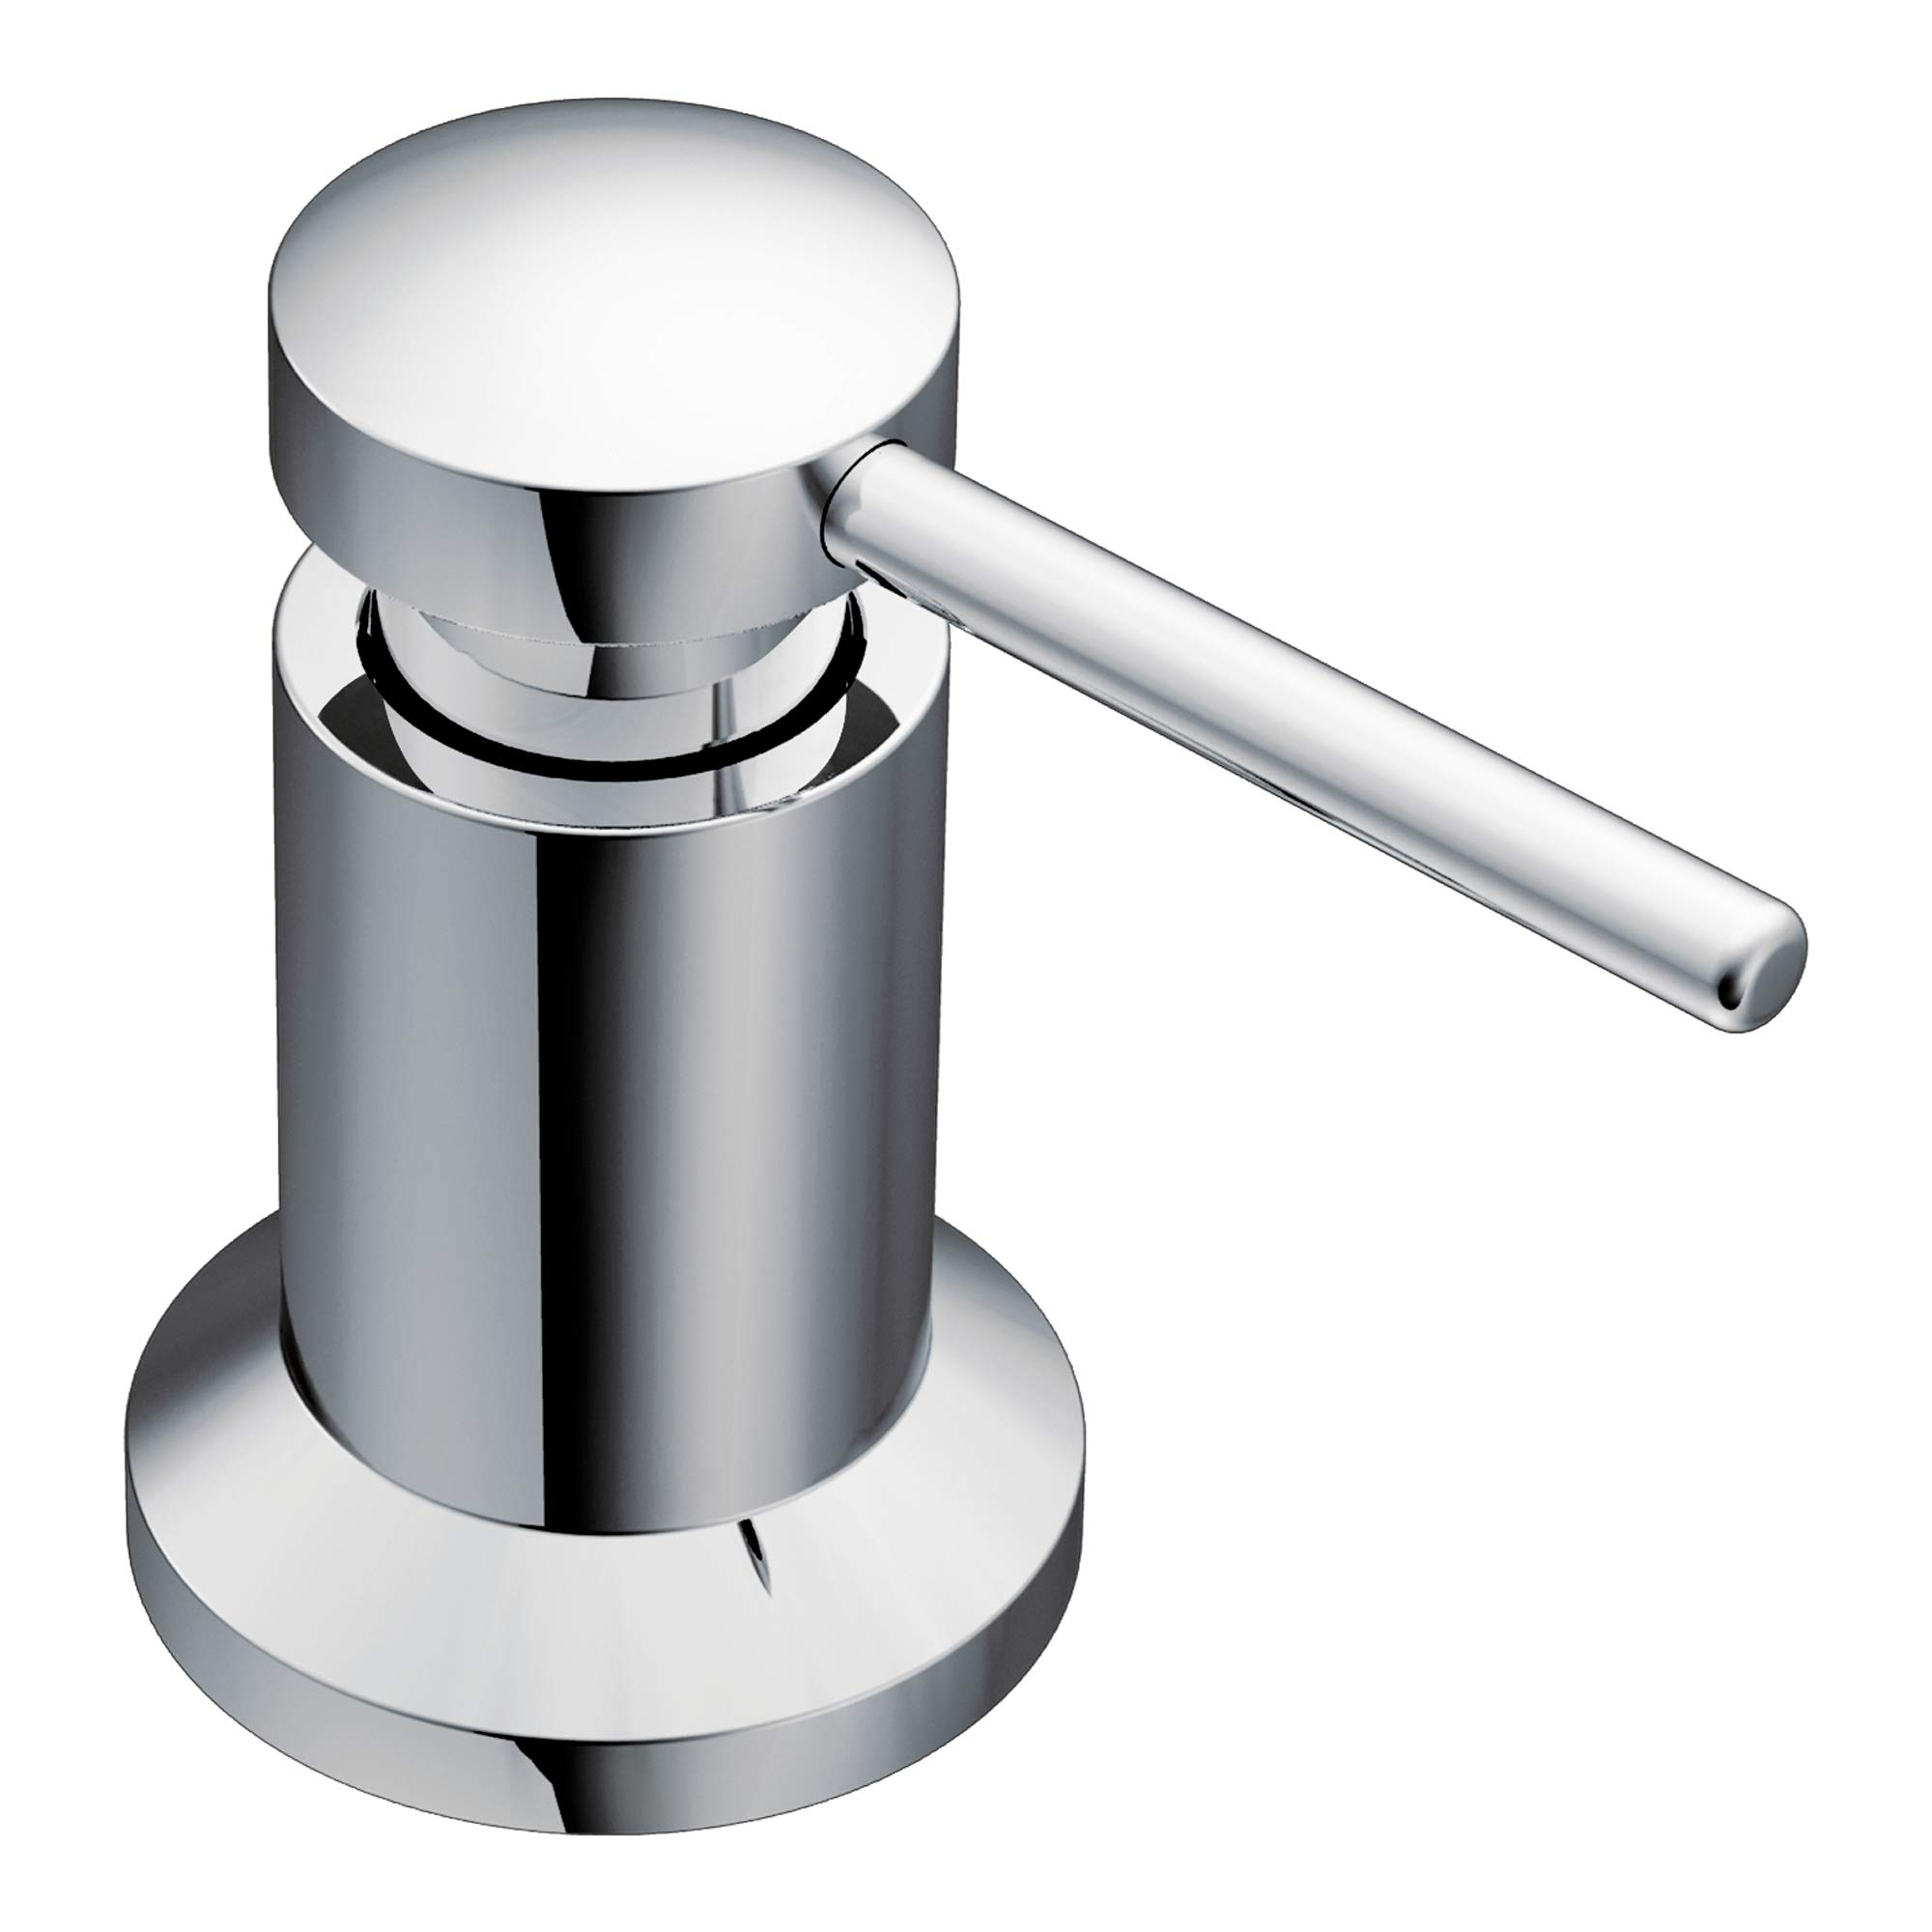 Moen 3942 Deck Mounted Kitchen Soap Dispenser with Above the Sink Refillable Bottle, Chrome by Moen